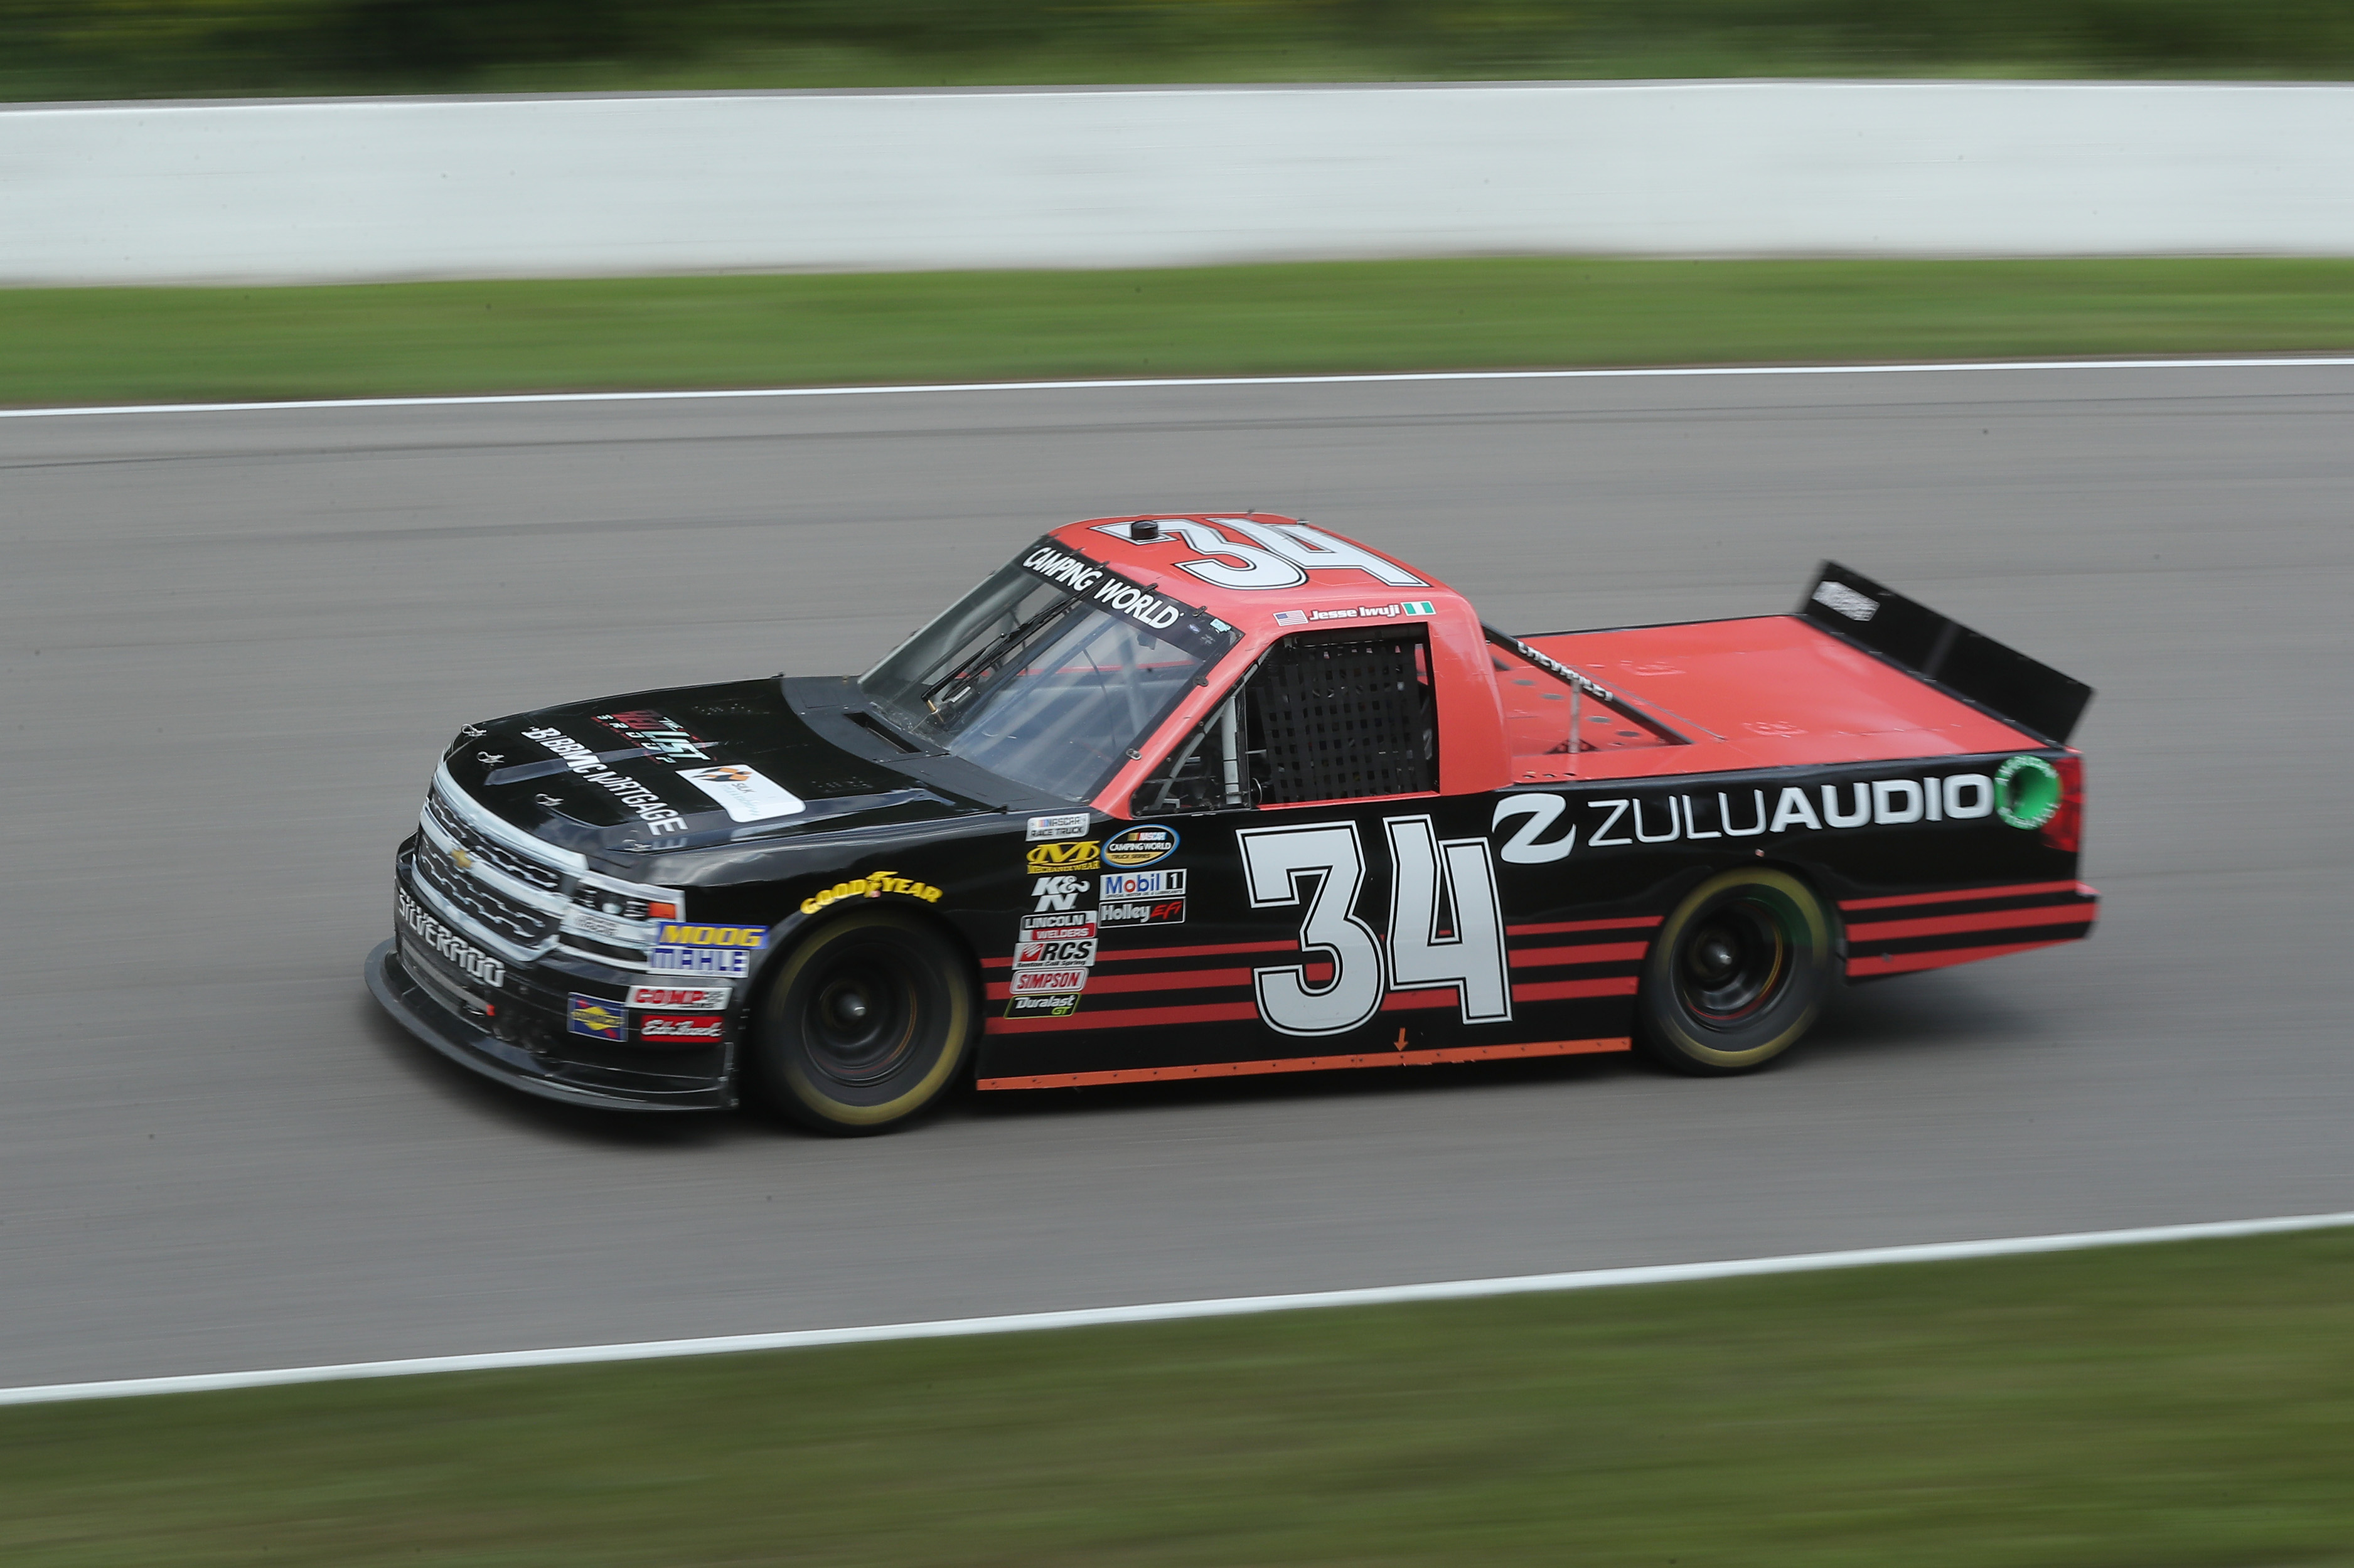 NASCAR Camping World Truck Series driver Jesse Iwuji racing in the Chevrolet Silverado 250